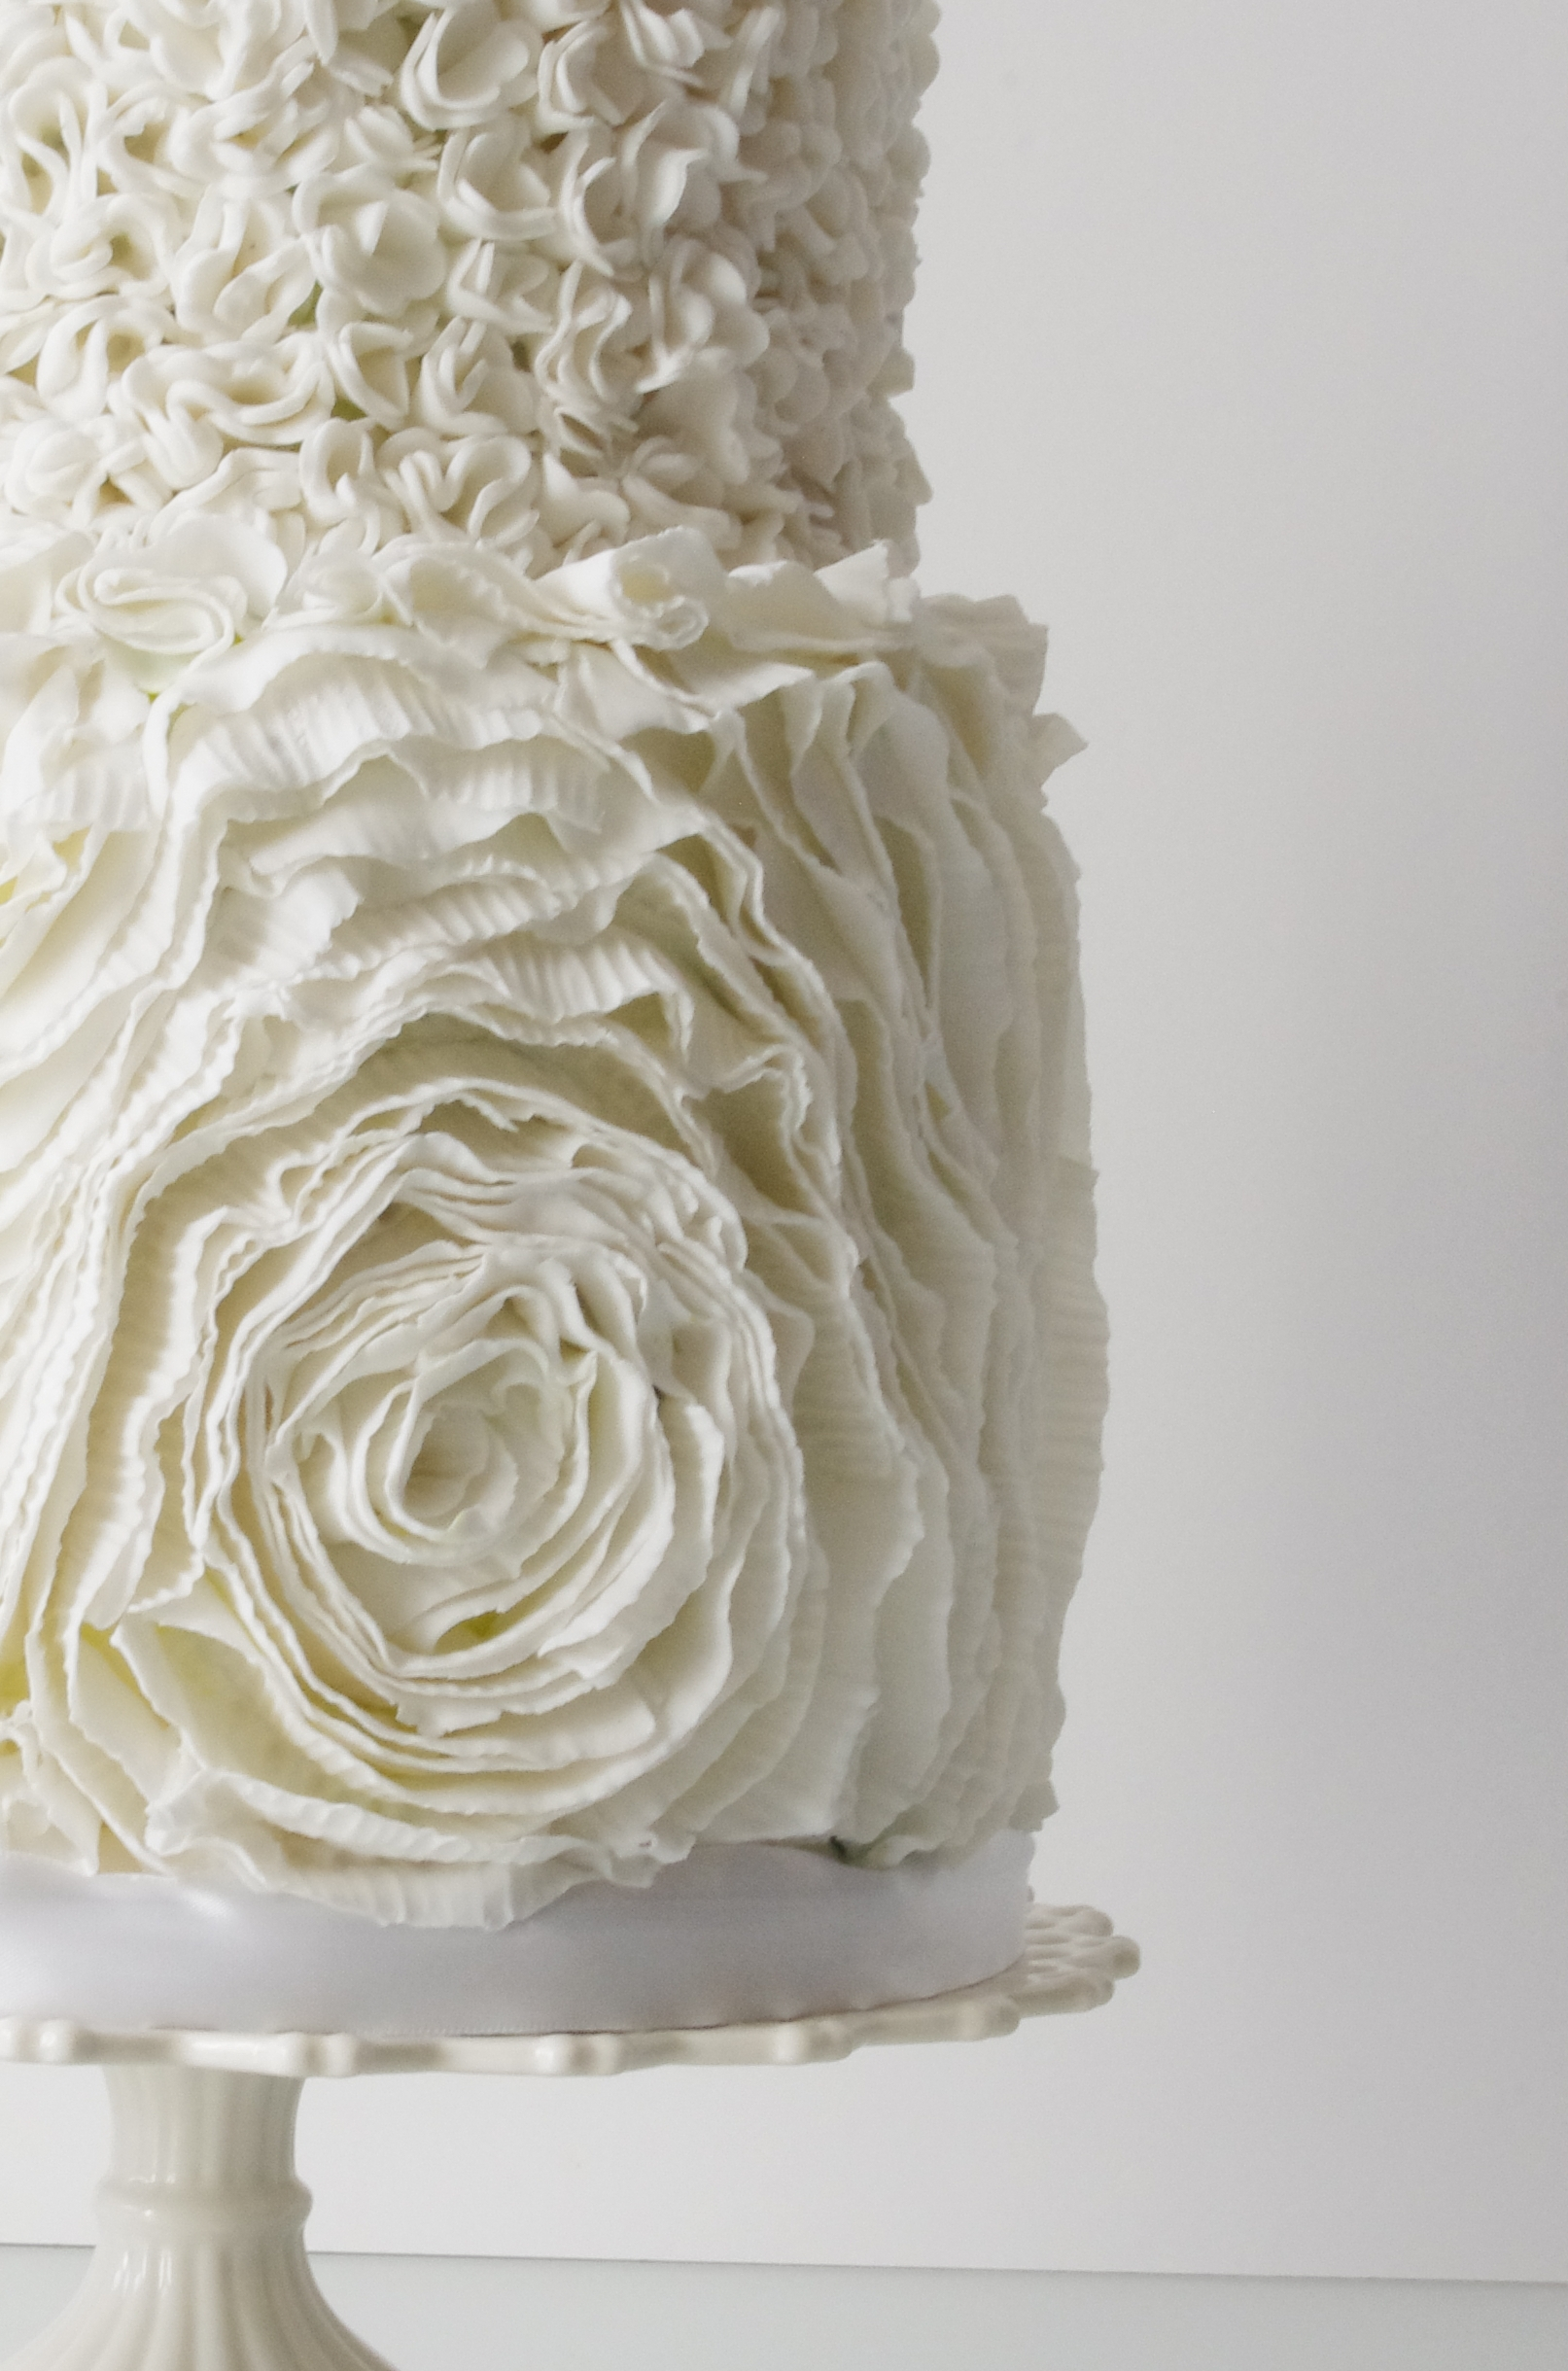 how to make ruffle roses on wedding cake ruffle and pompom wedding cake cakecentral 15987